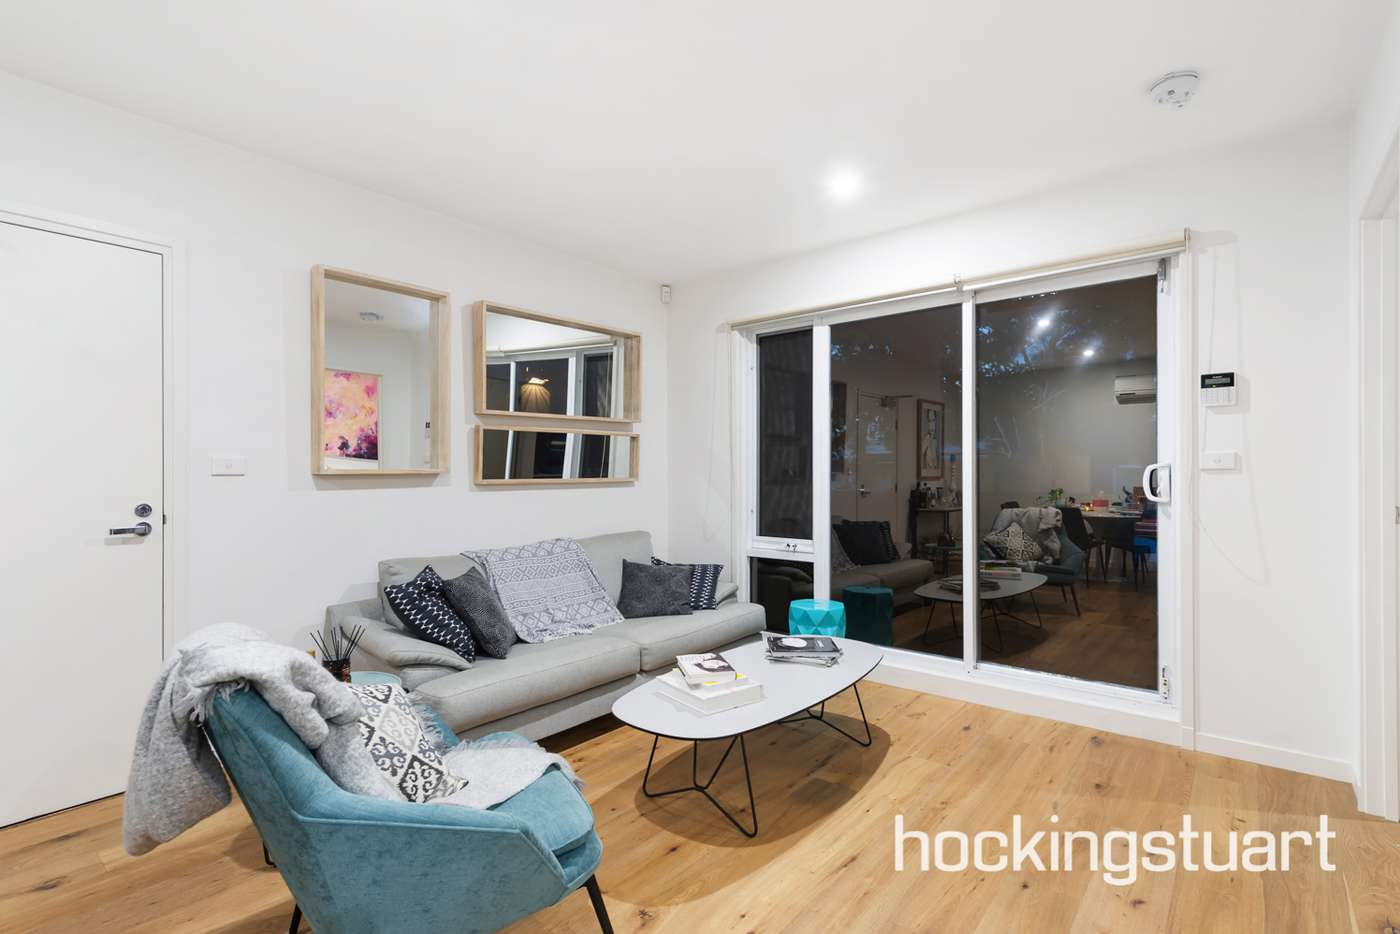 Fifth view of Homely apartment listing, 1/3 Liardet Street, Port Melbourne VIC 3207